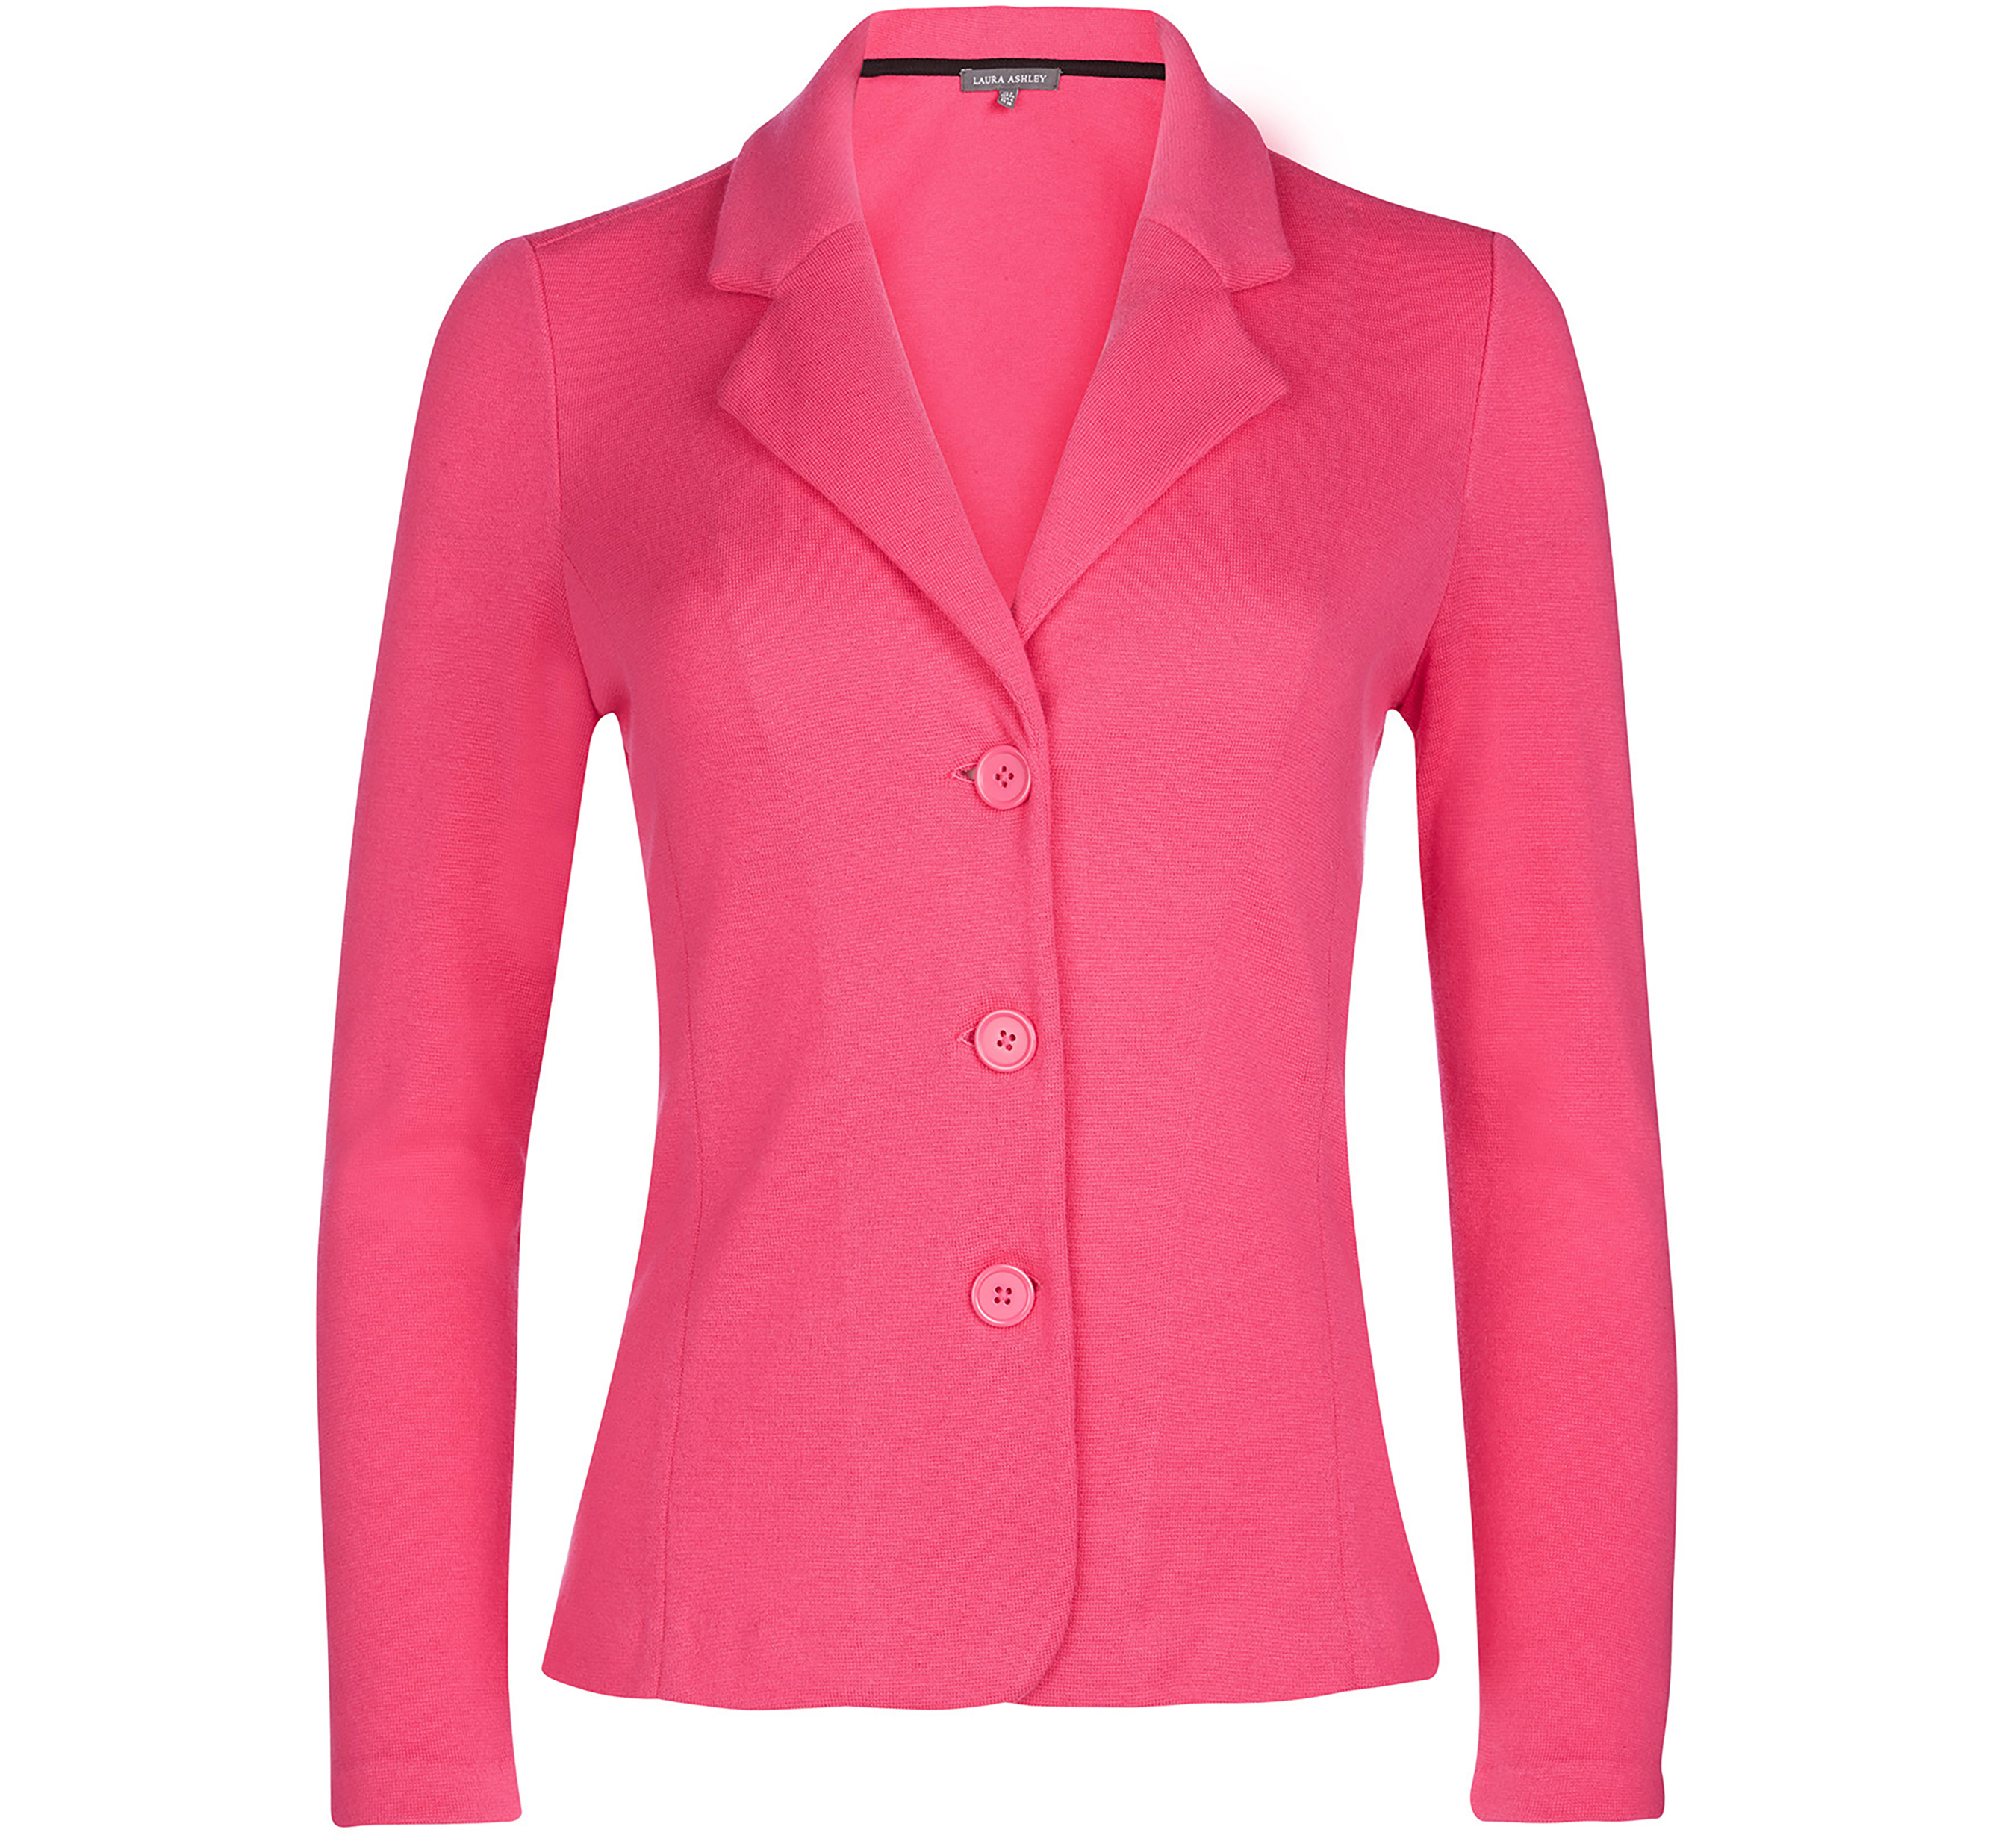 Laura Ashley Hot Pink Milano Blazer